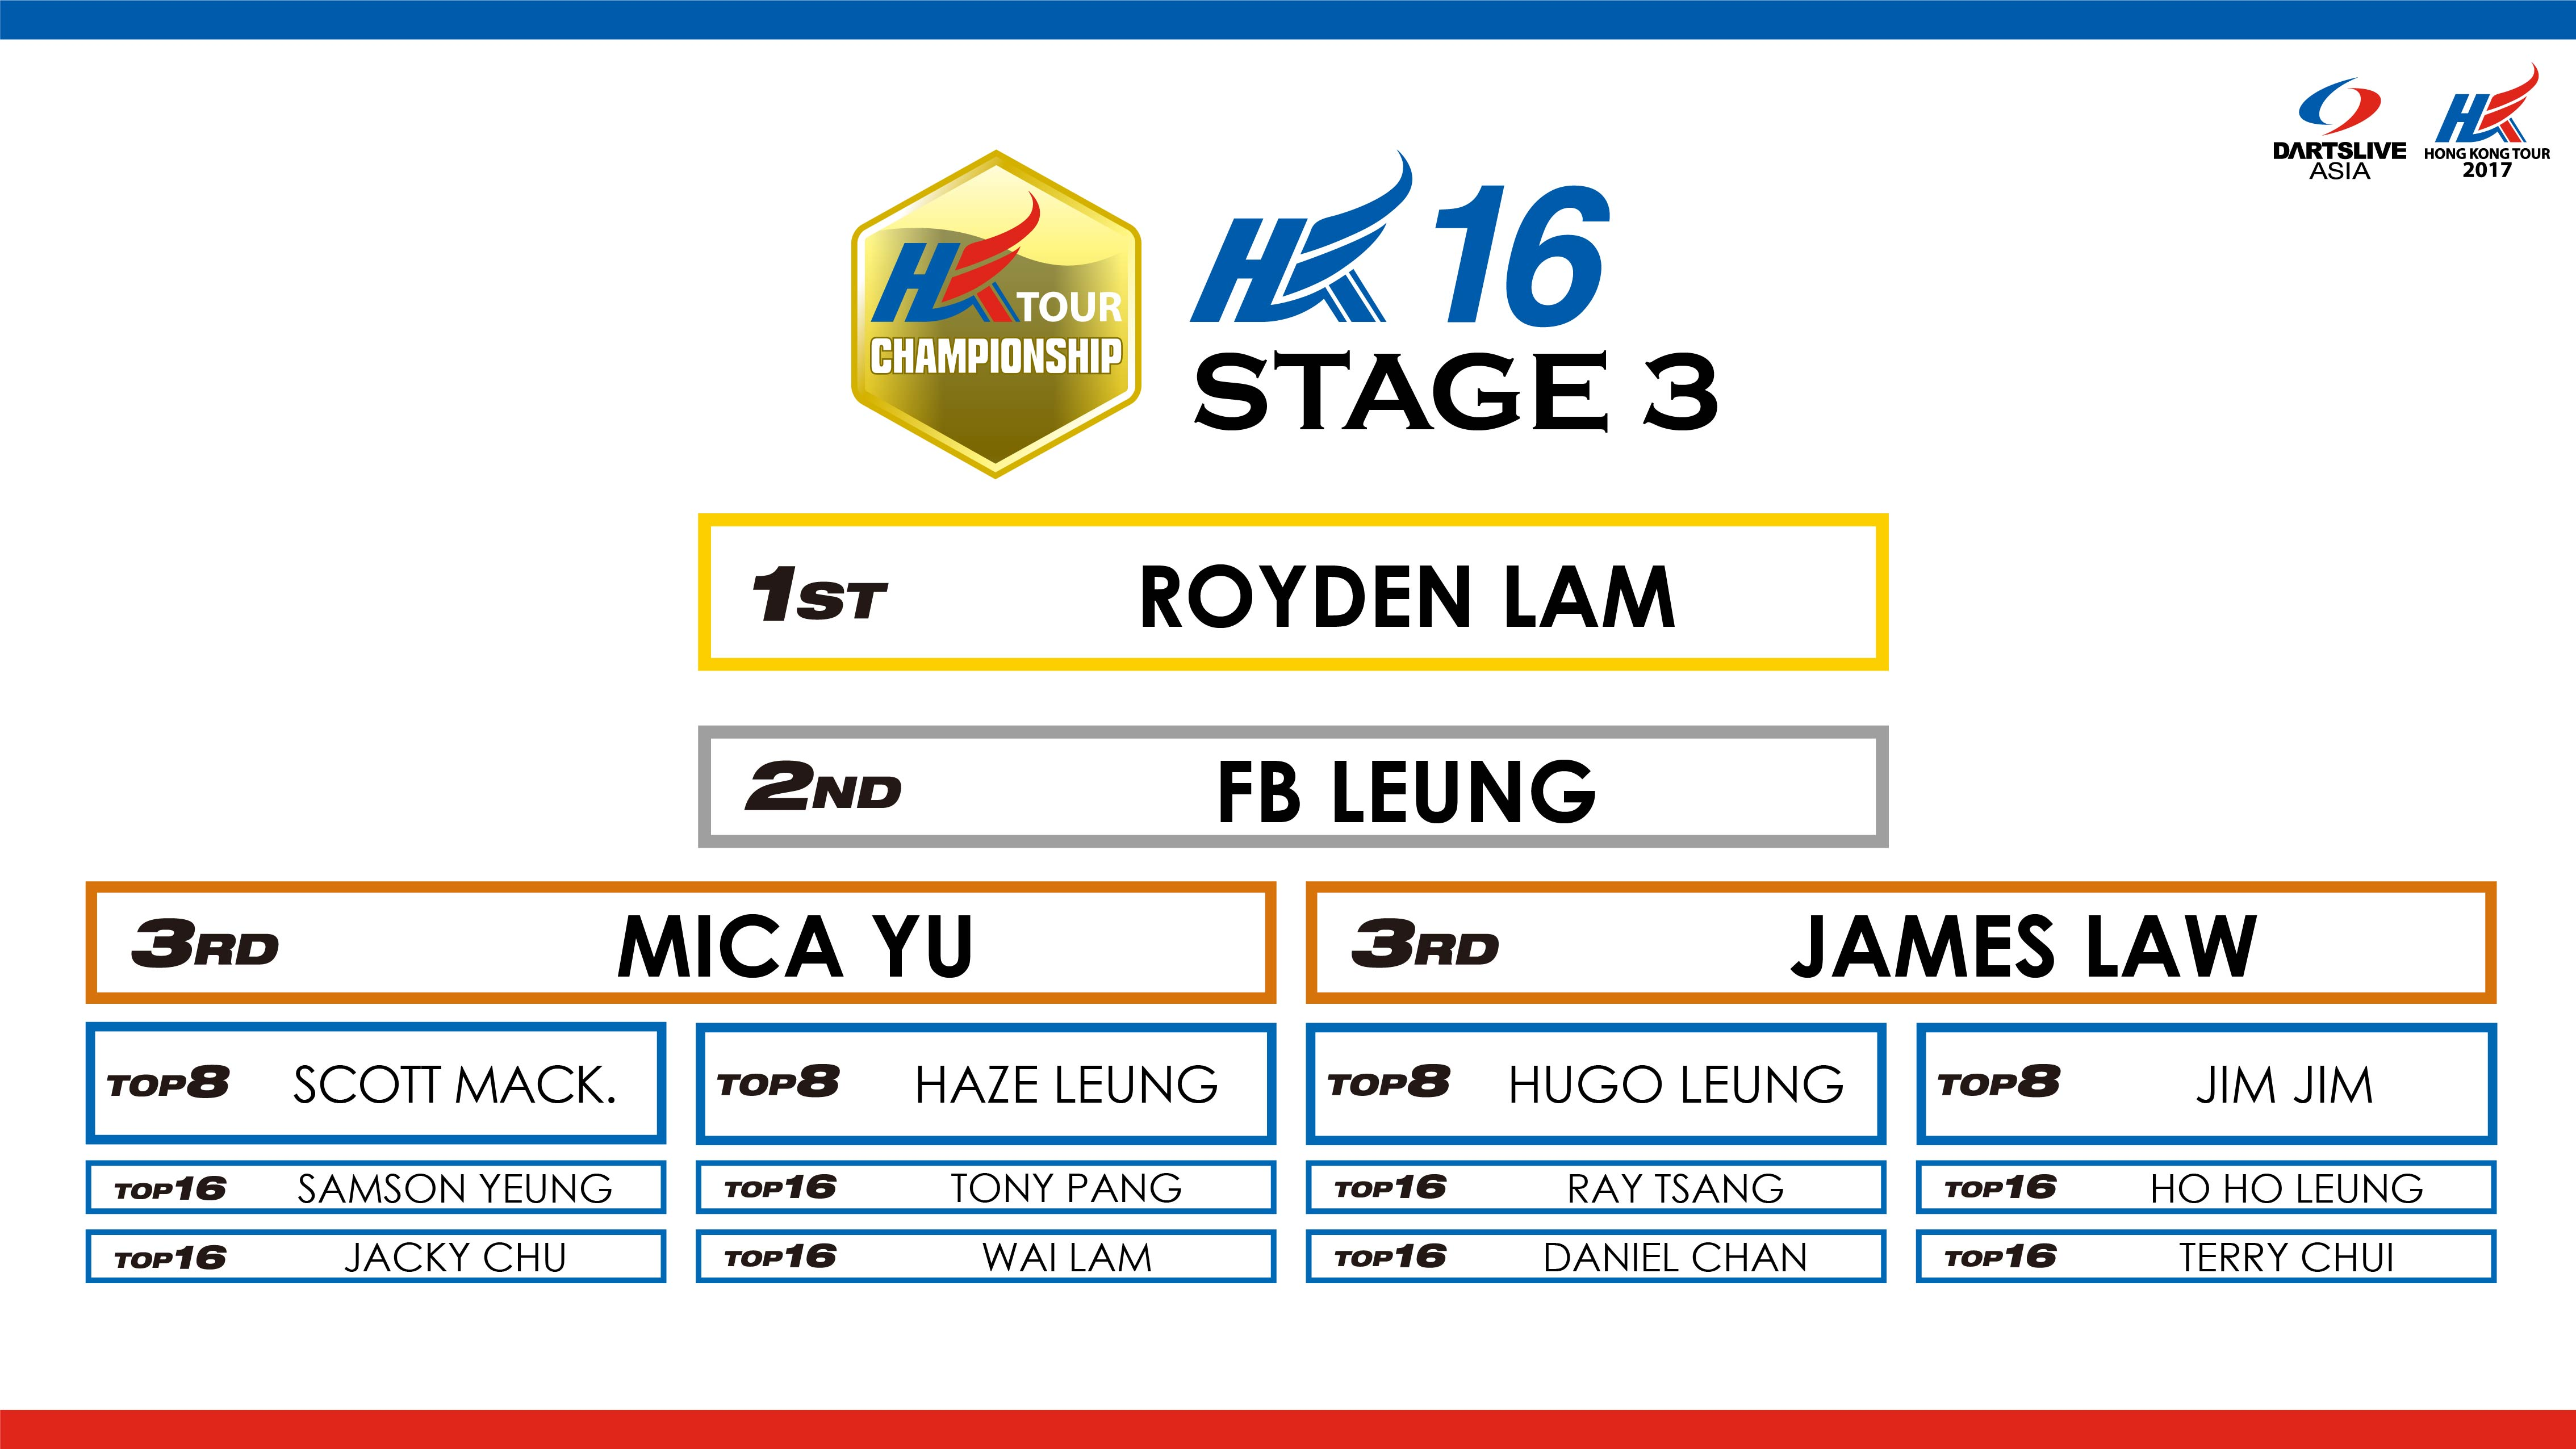 HONG KONG TOUR CHAMPIONSHIP 2017 STAGE 3